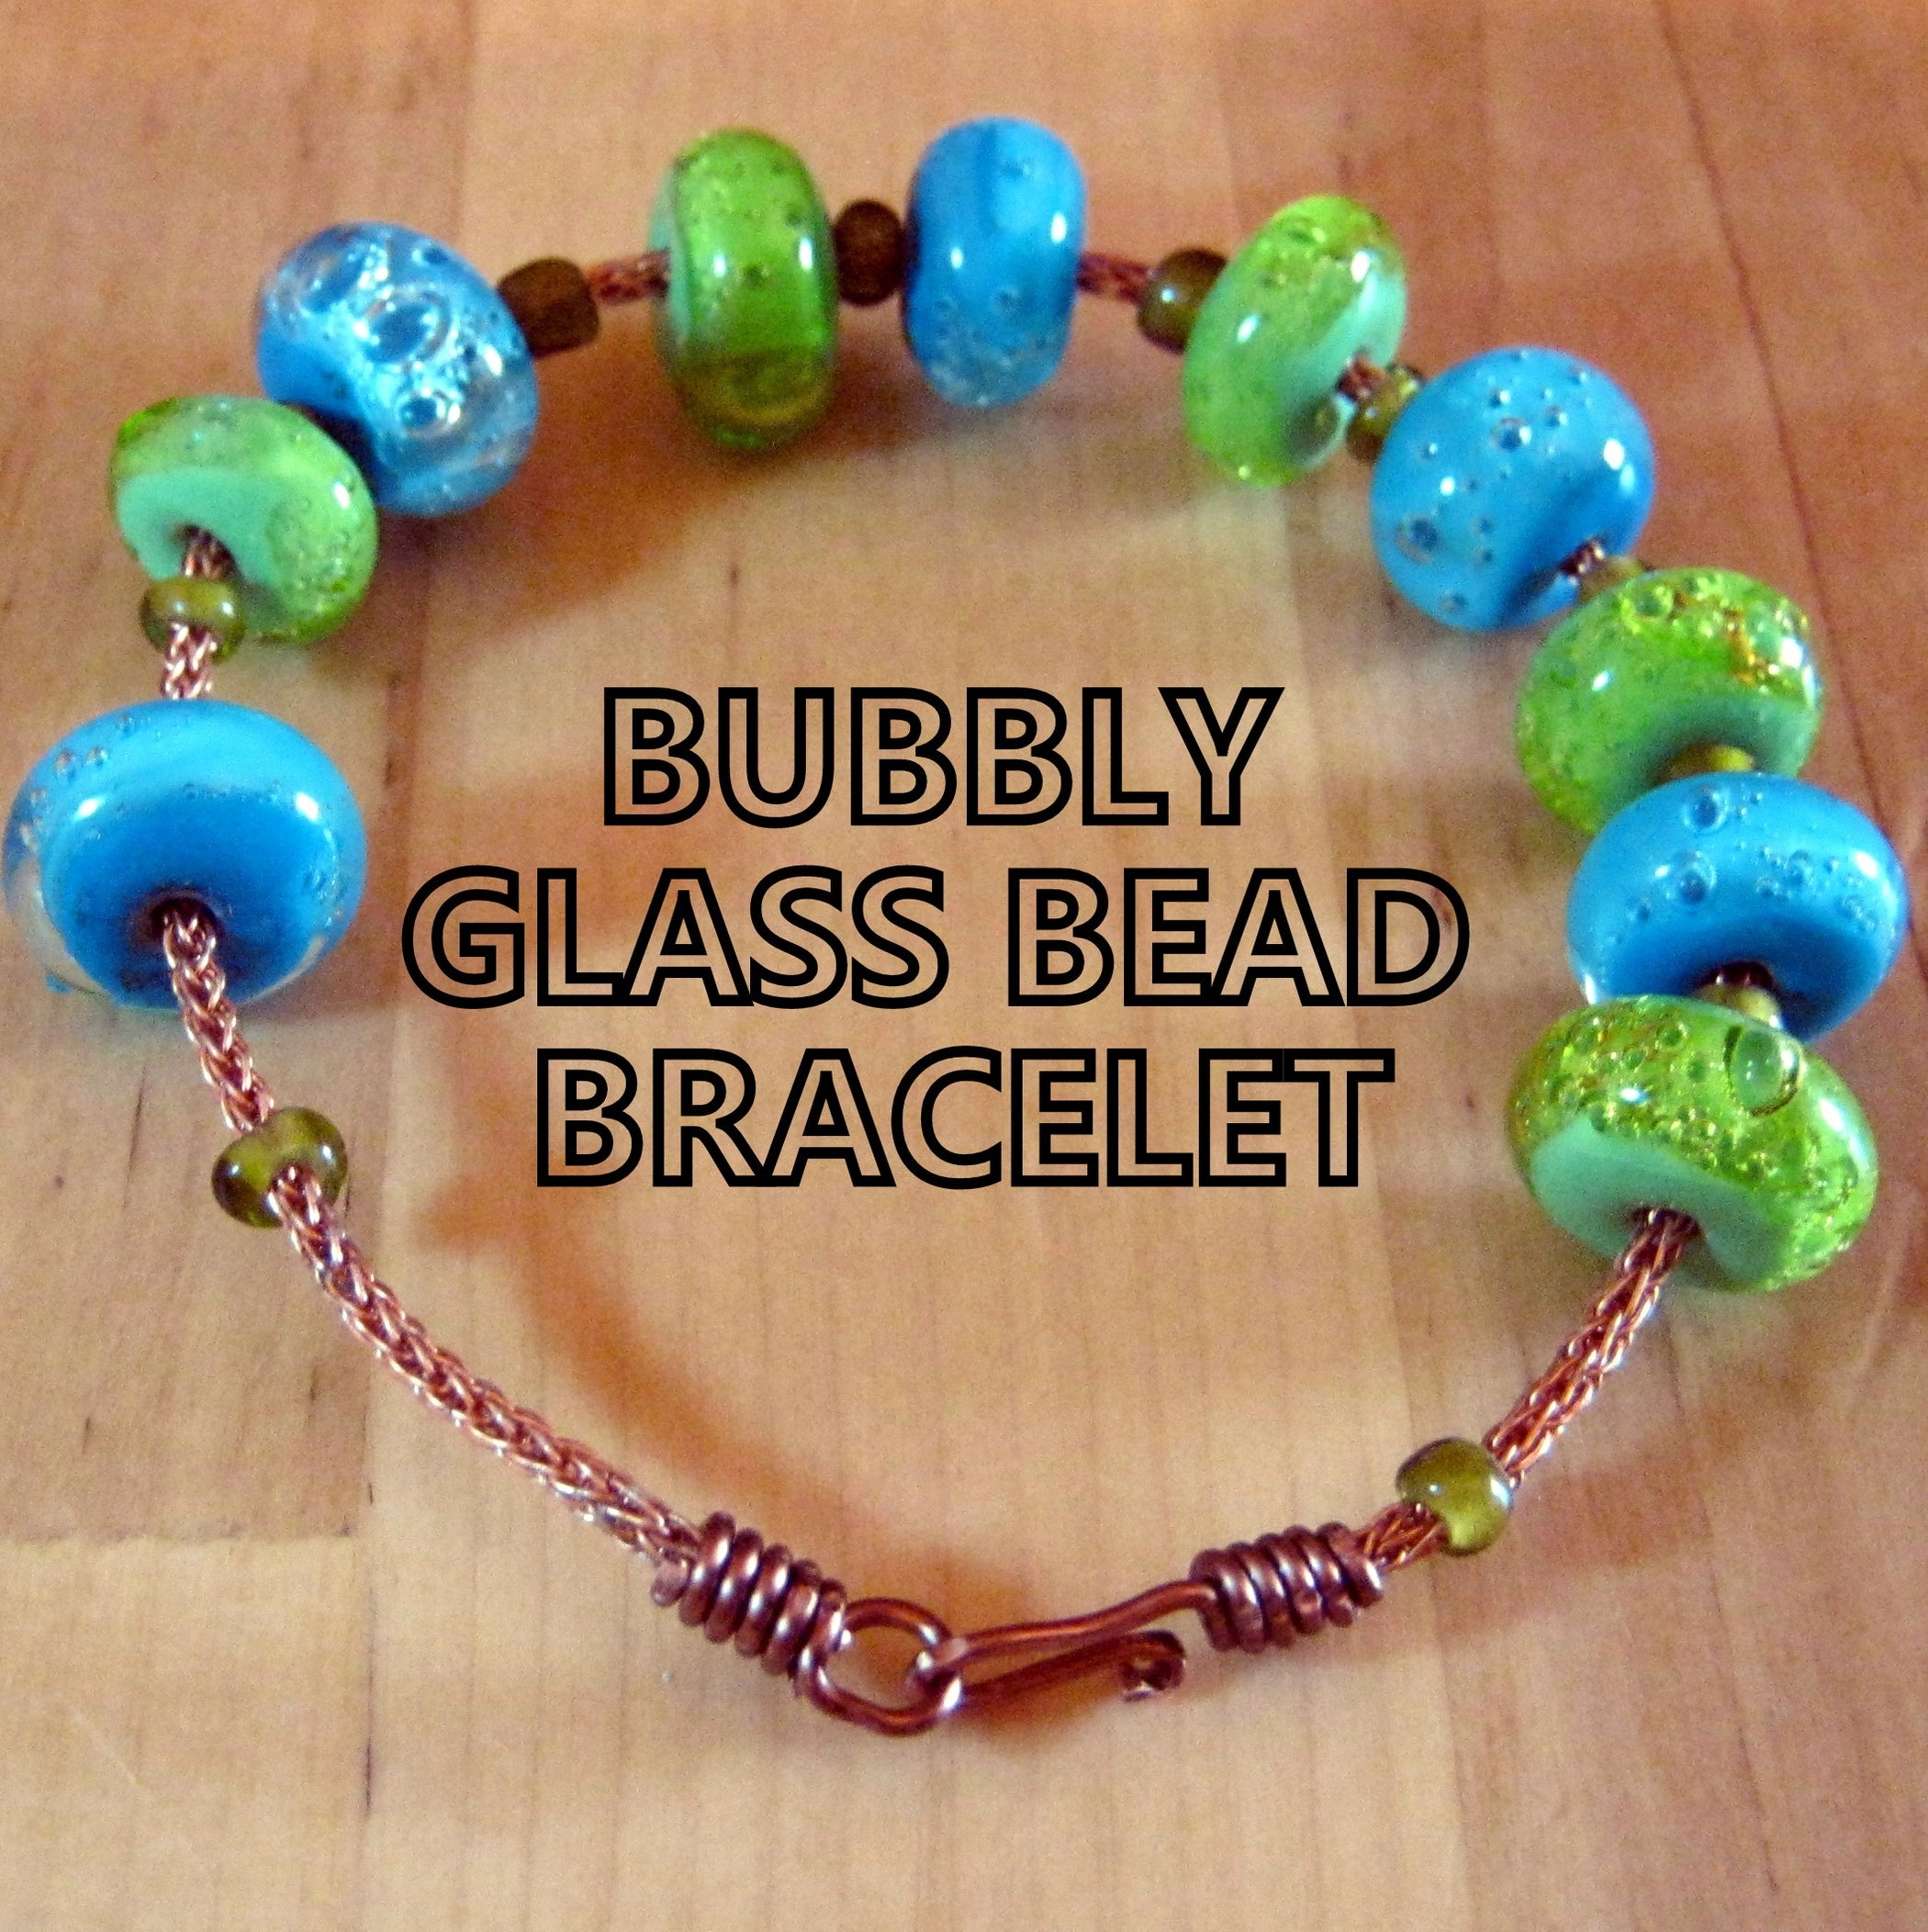 Bubbly Glass Bead Bracelet: 3 Steps (with Pictures)